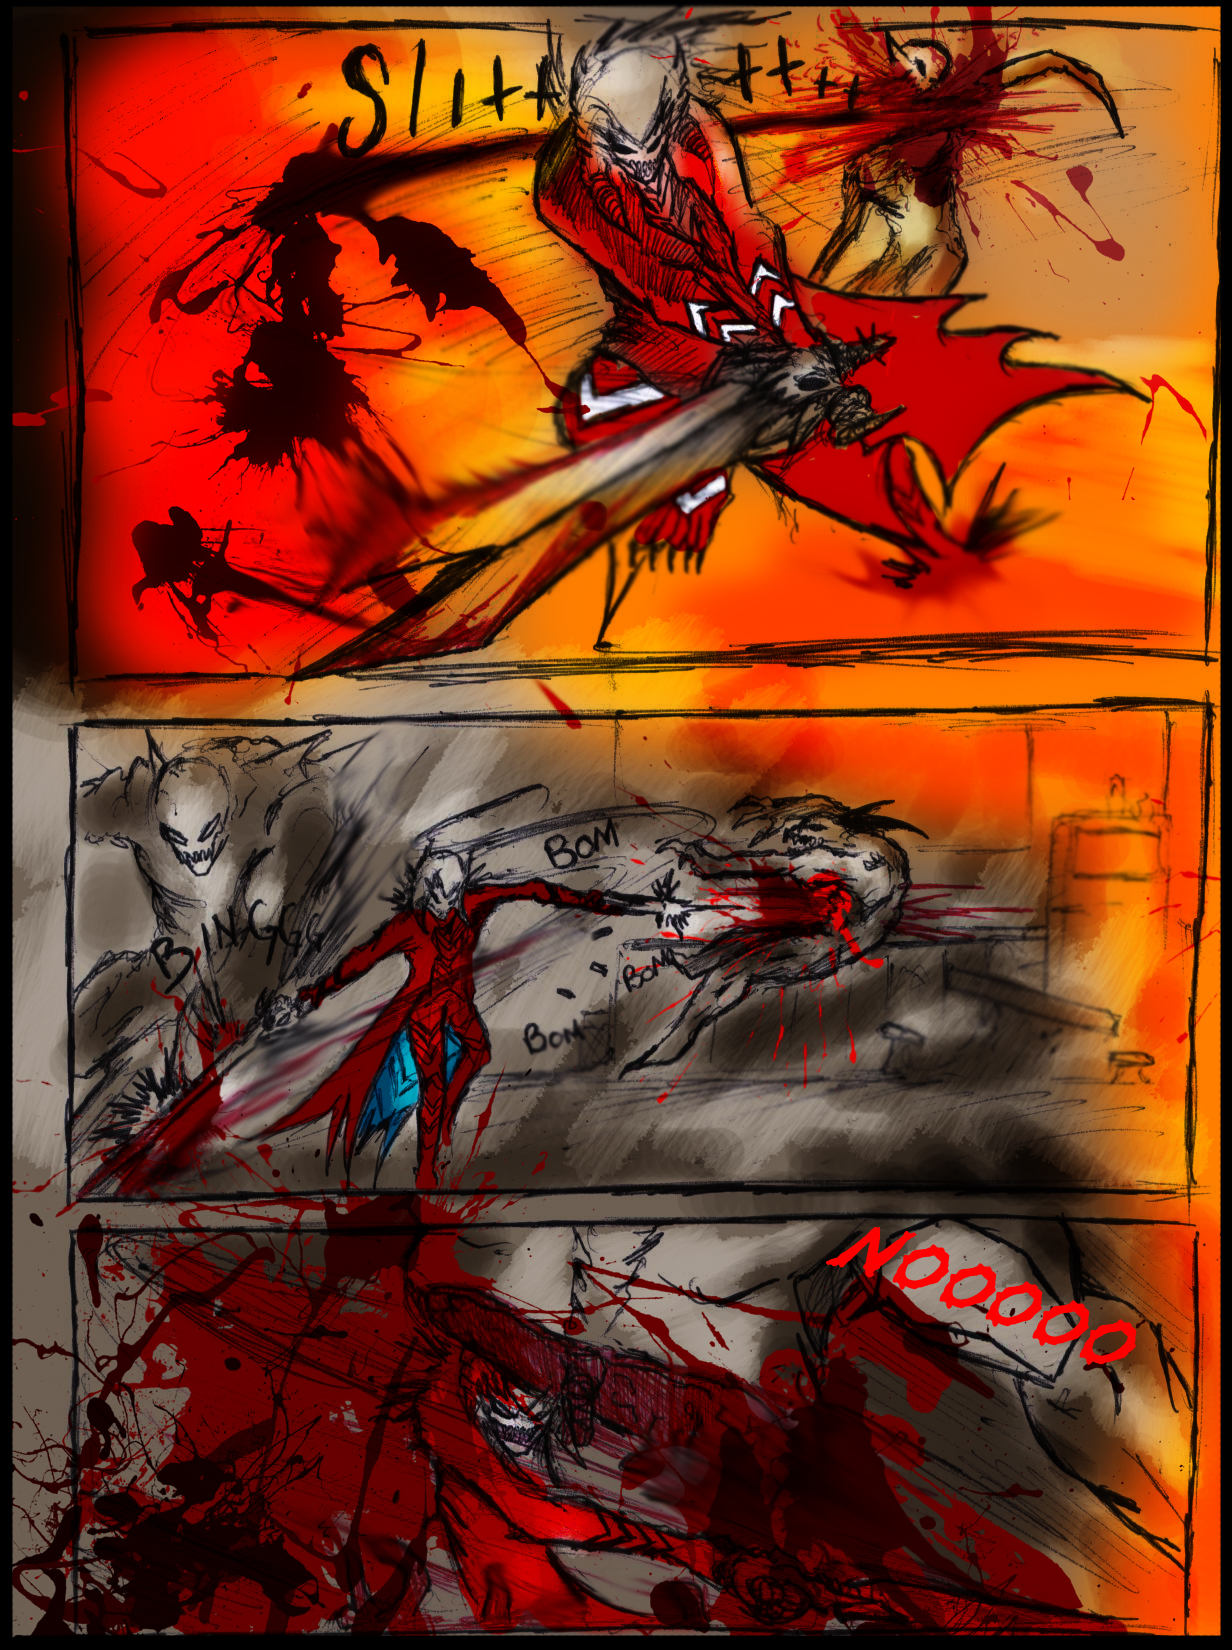 page 10, Lethally Evil